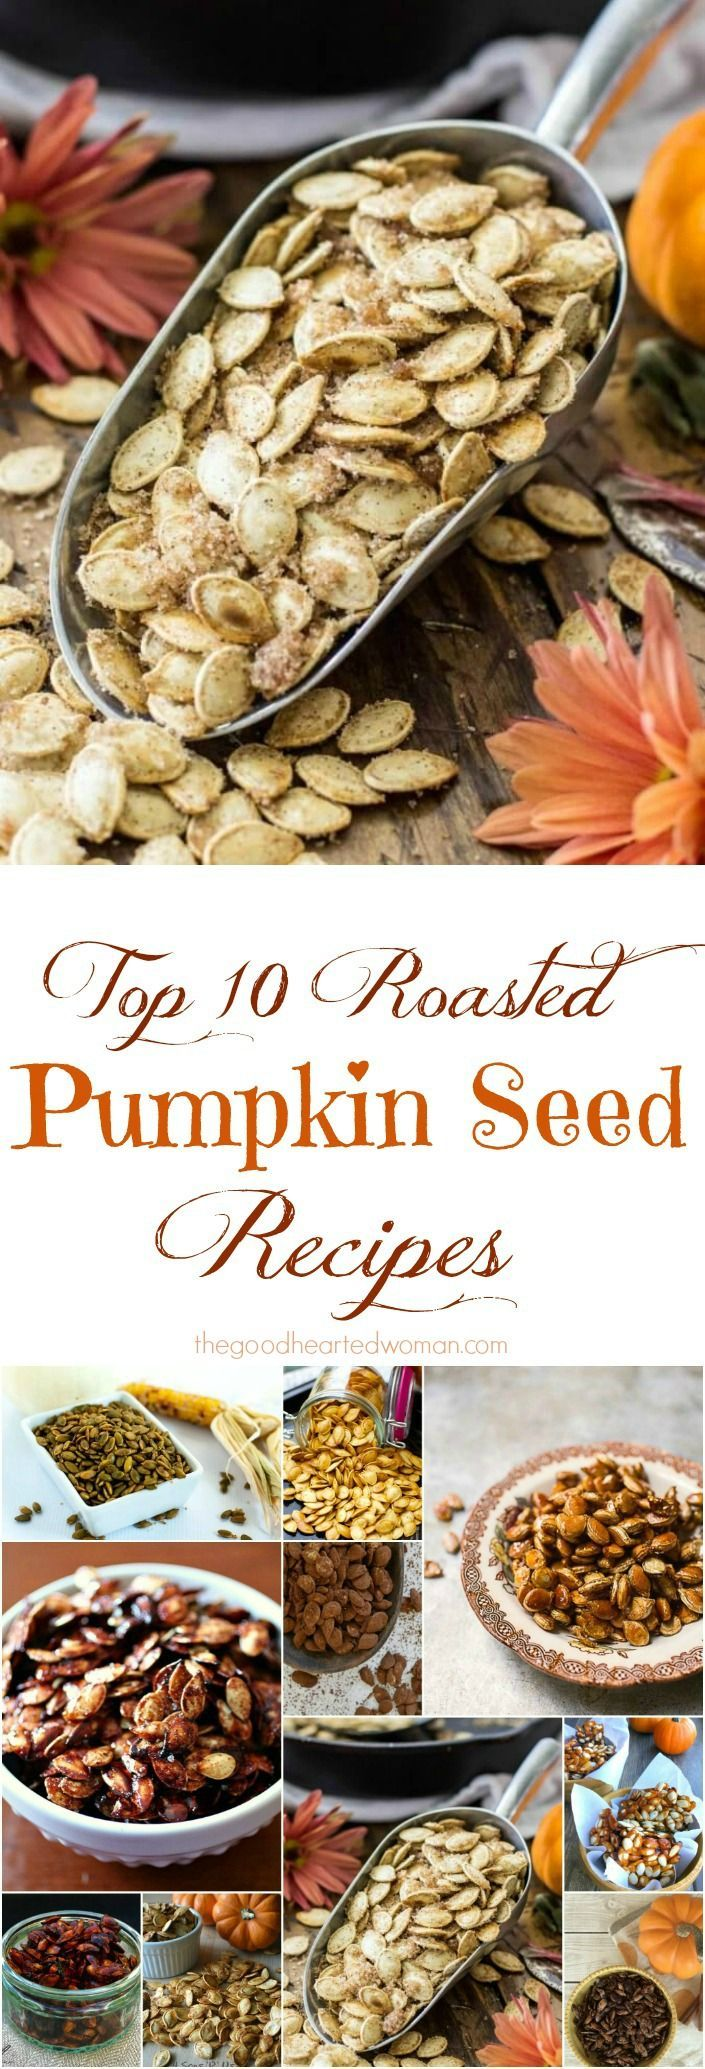 When the pumpkin is carved, there is another memory to make – Roasted Pumpkin Seeds!! Top 10 Best Roasted Pumpkin Seed Recipes   The Good Hearted Woman